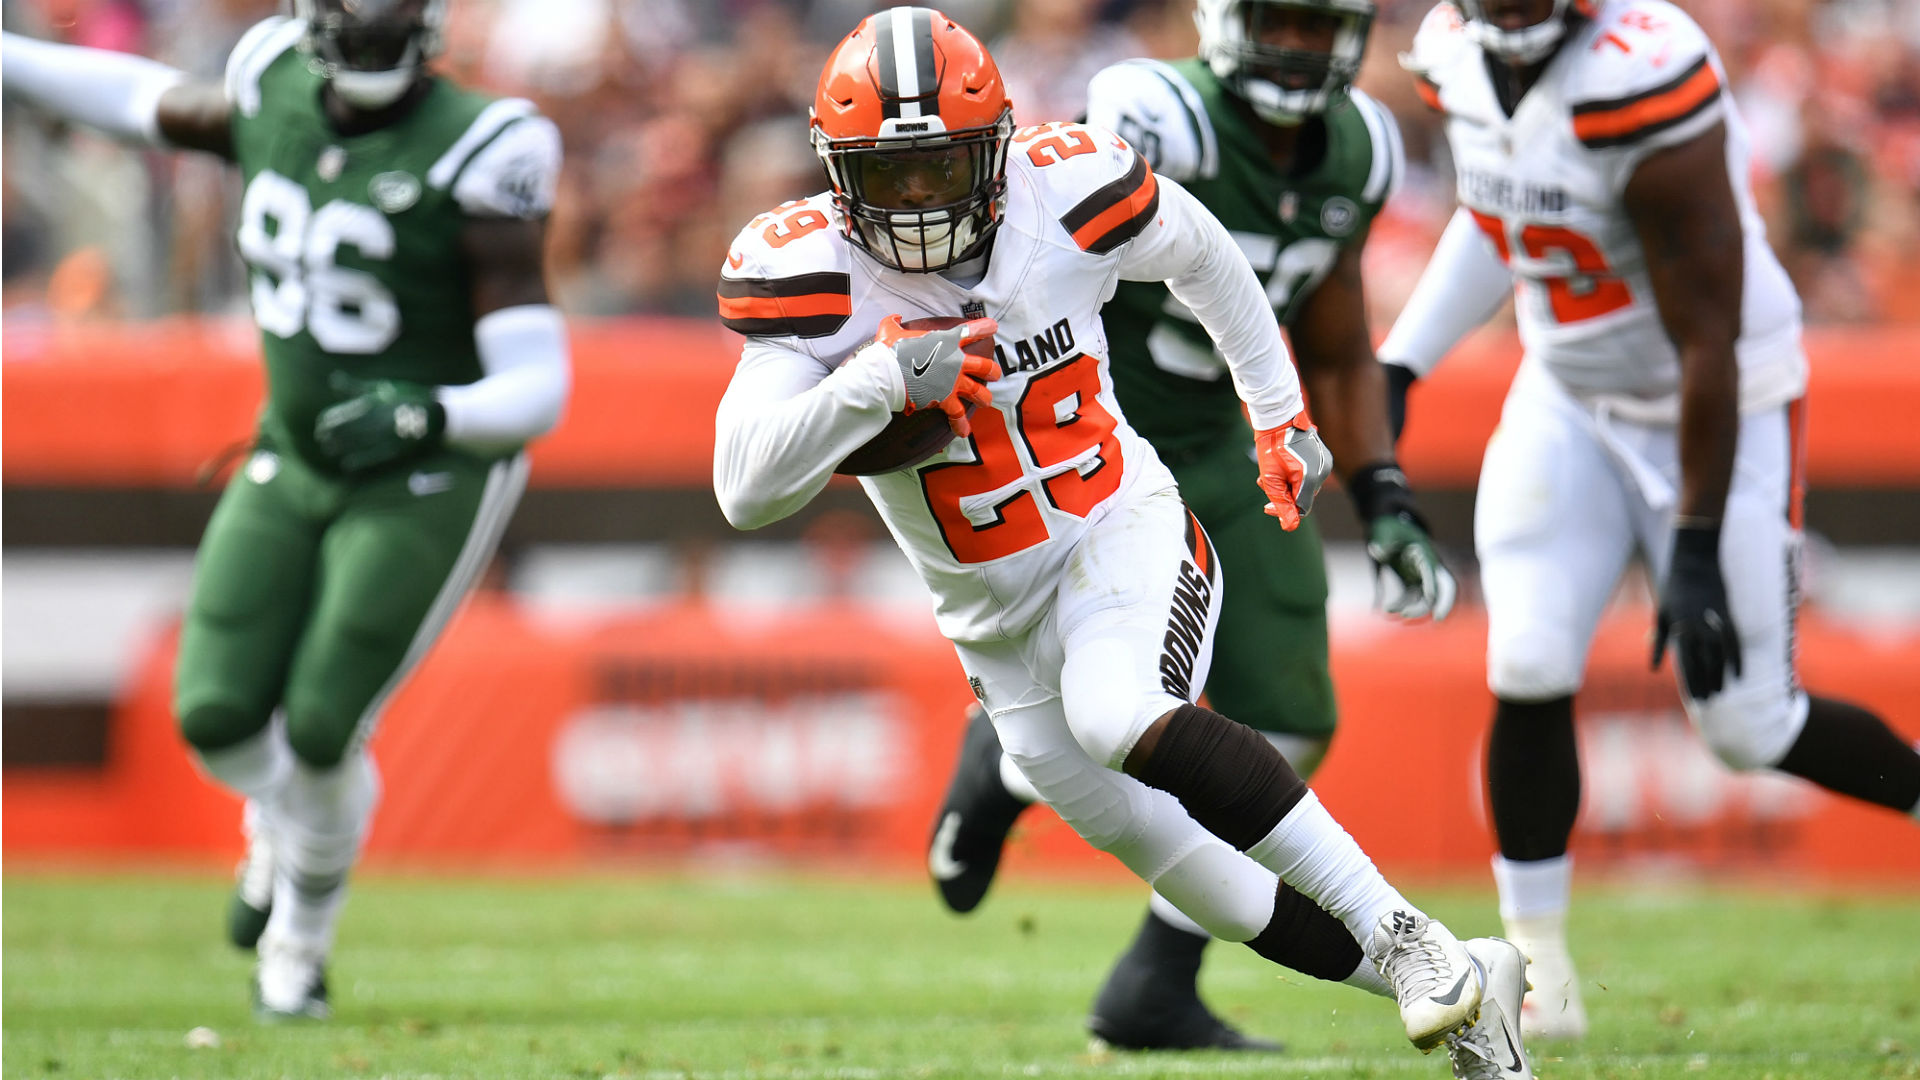 Browns trade disappointing WR Coleman to Bills for pick